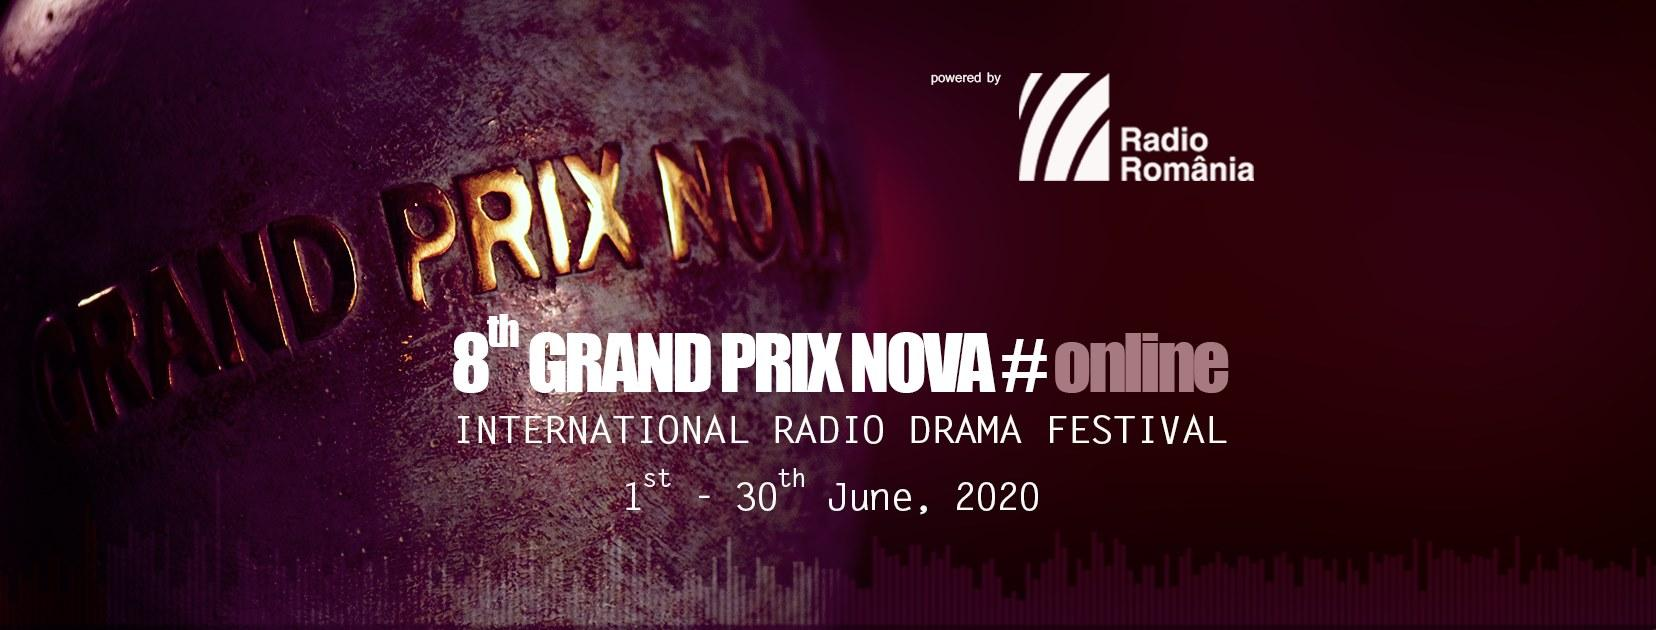 bilantul-festivalului-international-grand-prix-nova-online-2020